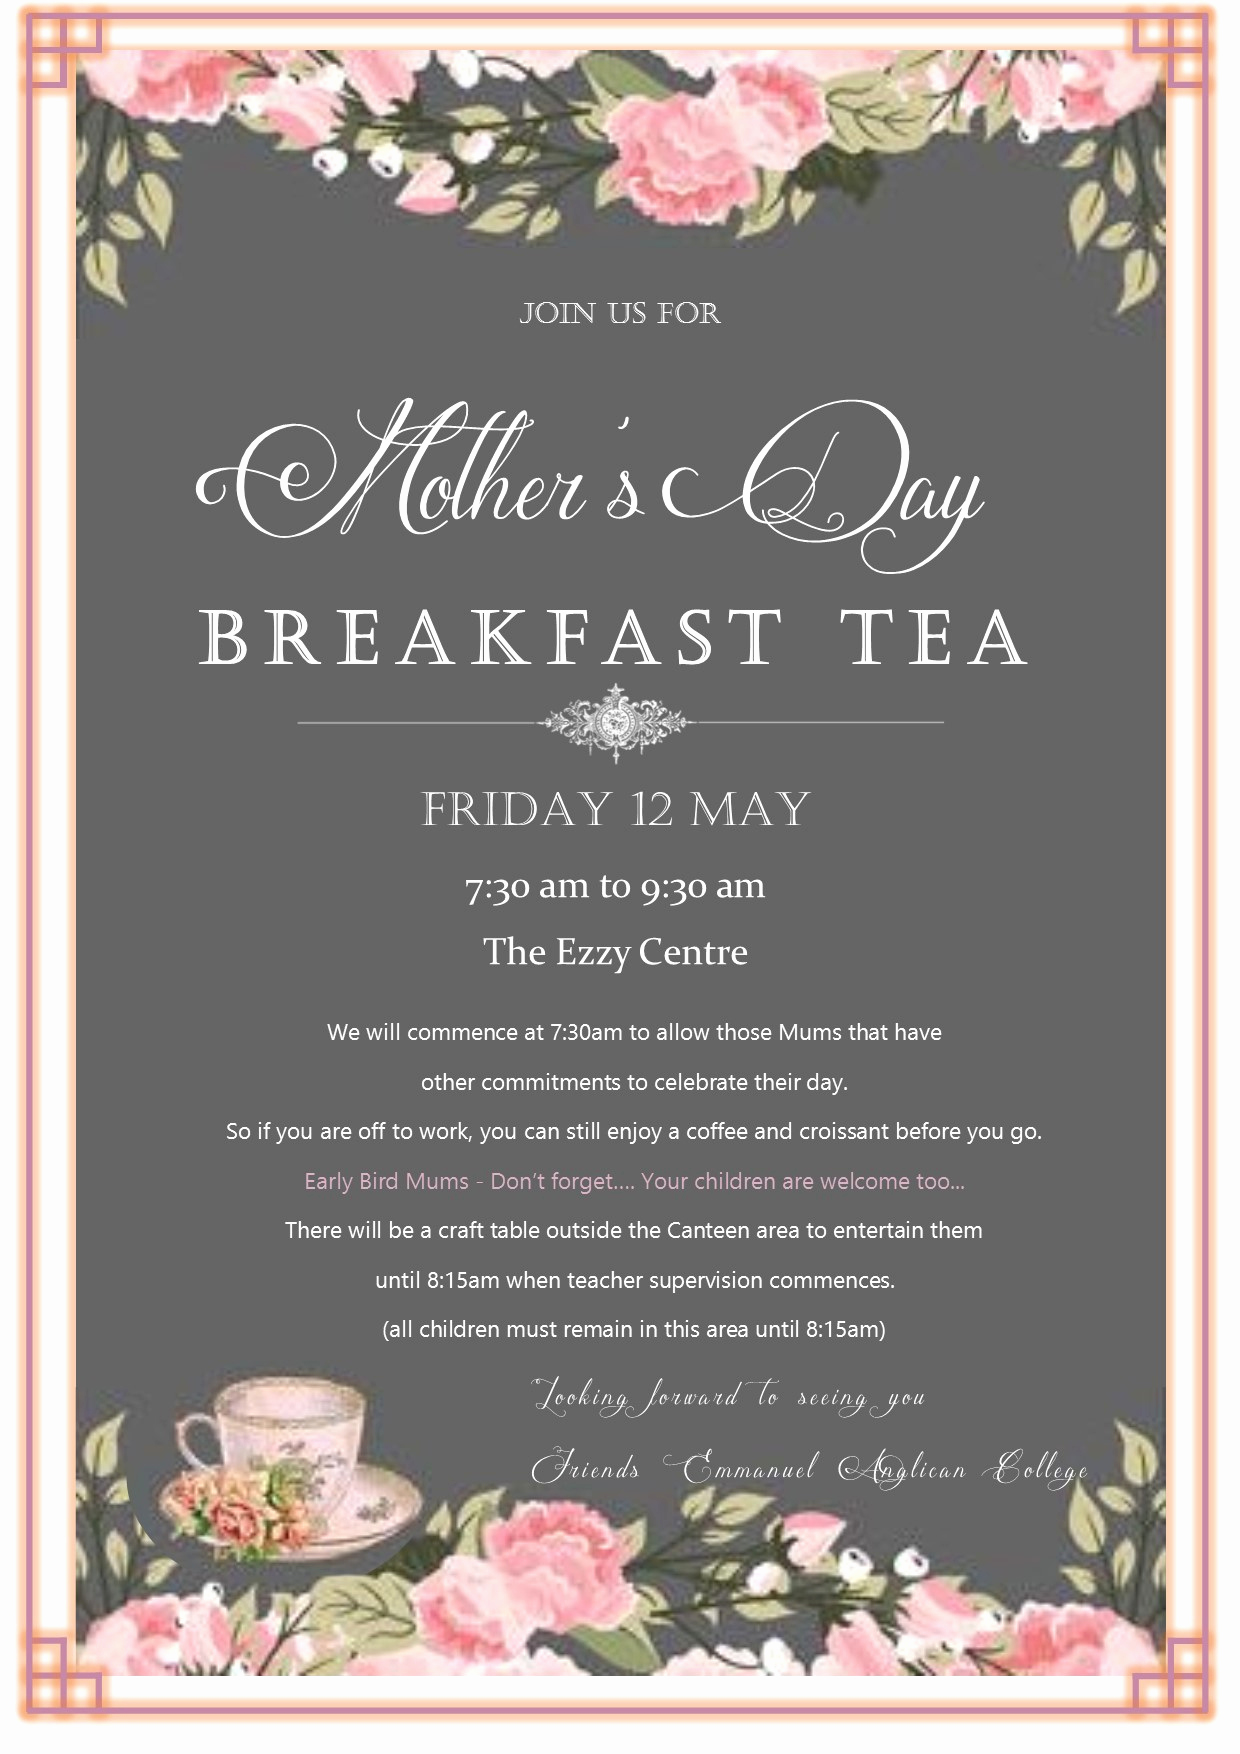 Mothers Day Tea Invitation Inspirational Mother S Day Breakfast Tea Emmanuel Anglican College